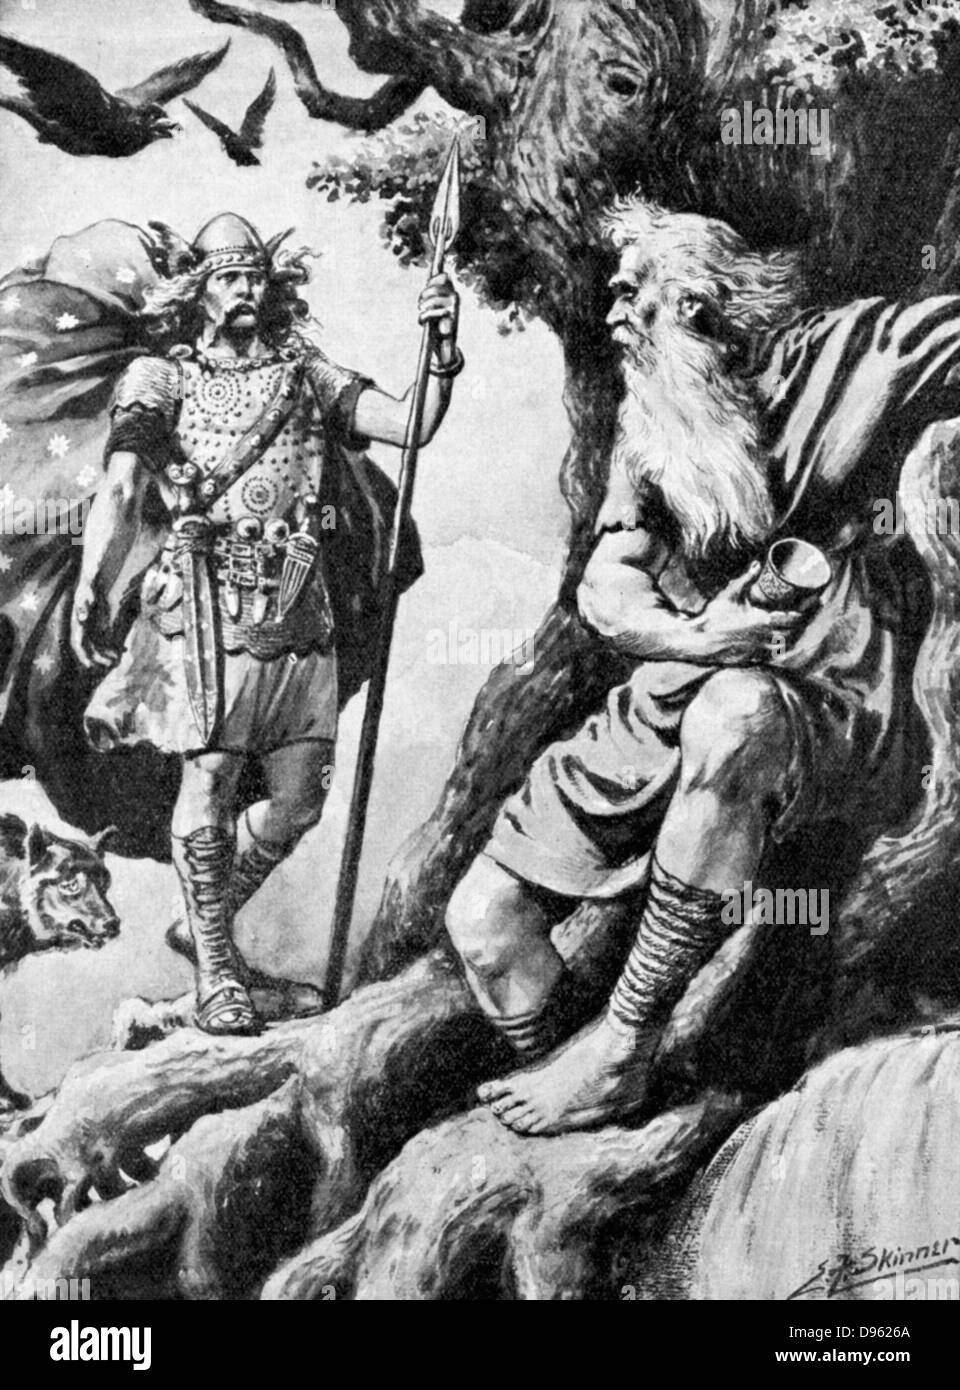 Odin or Wotan. One of principal gods of Norse mythology. God of War. Here he seeks wisdom to make him all-powerful. - Stock Image